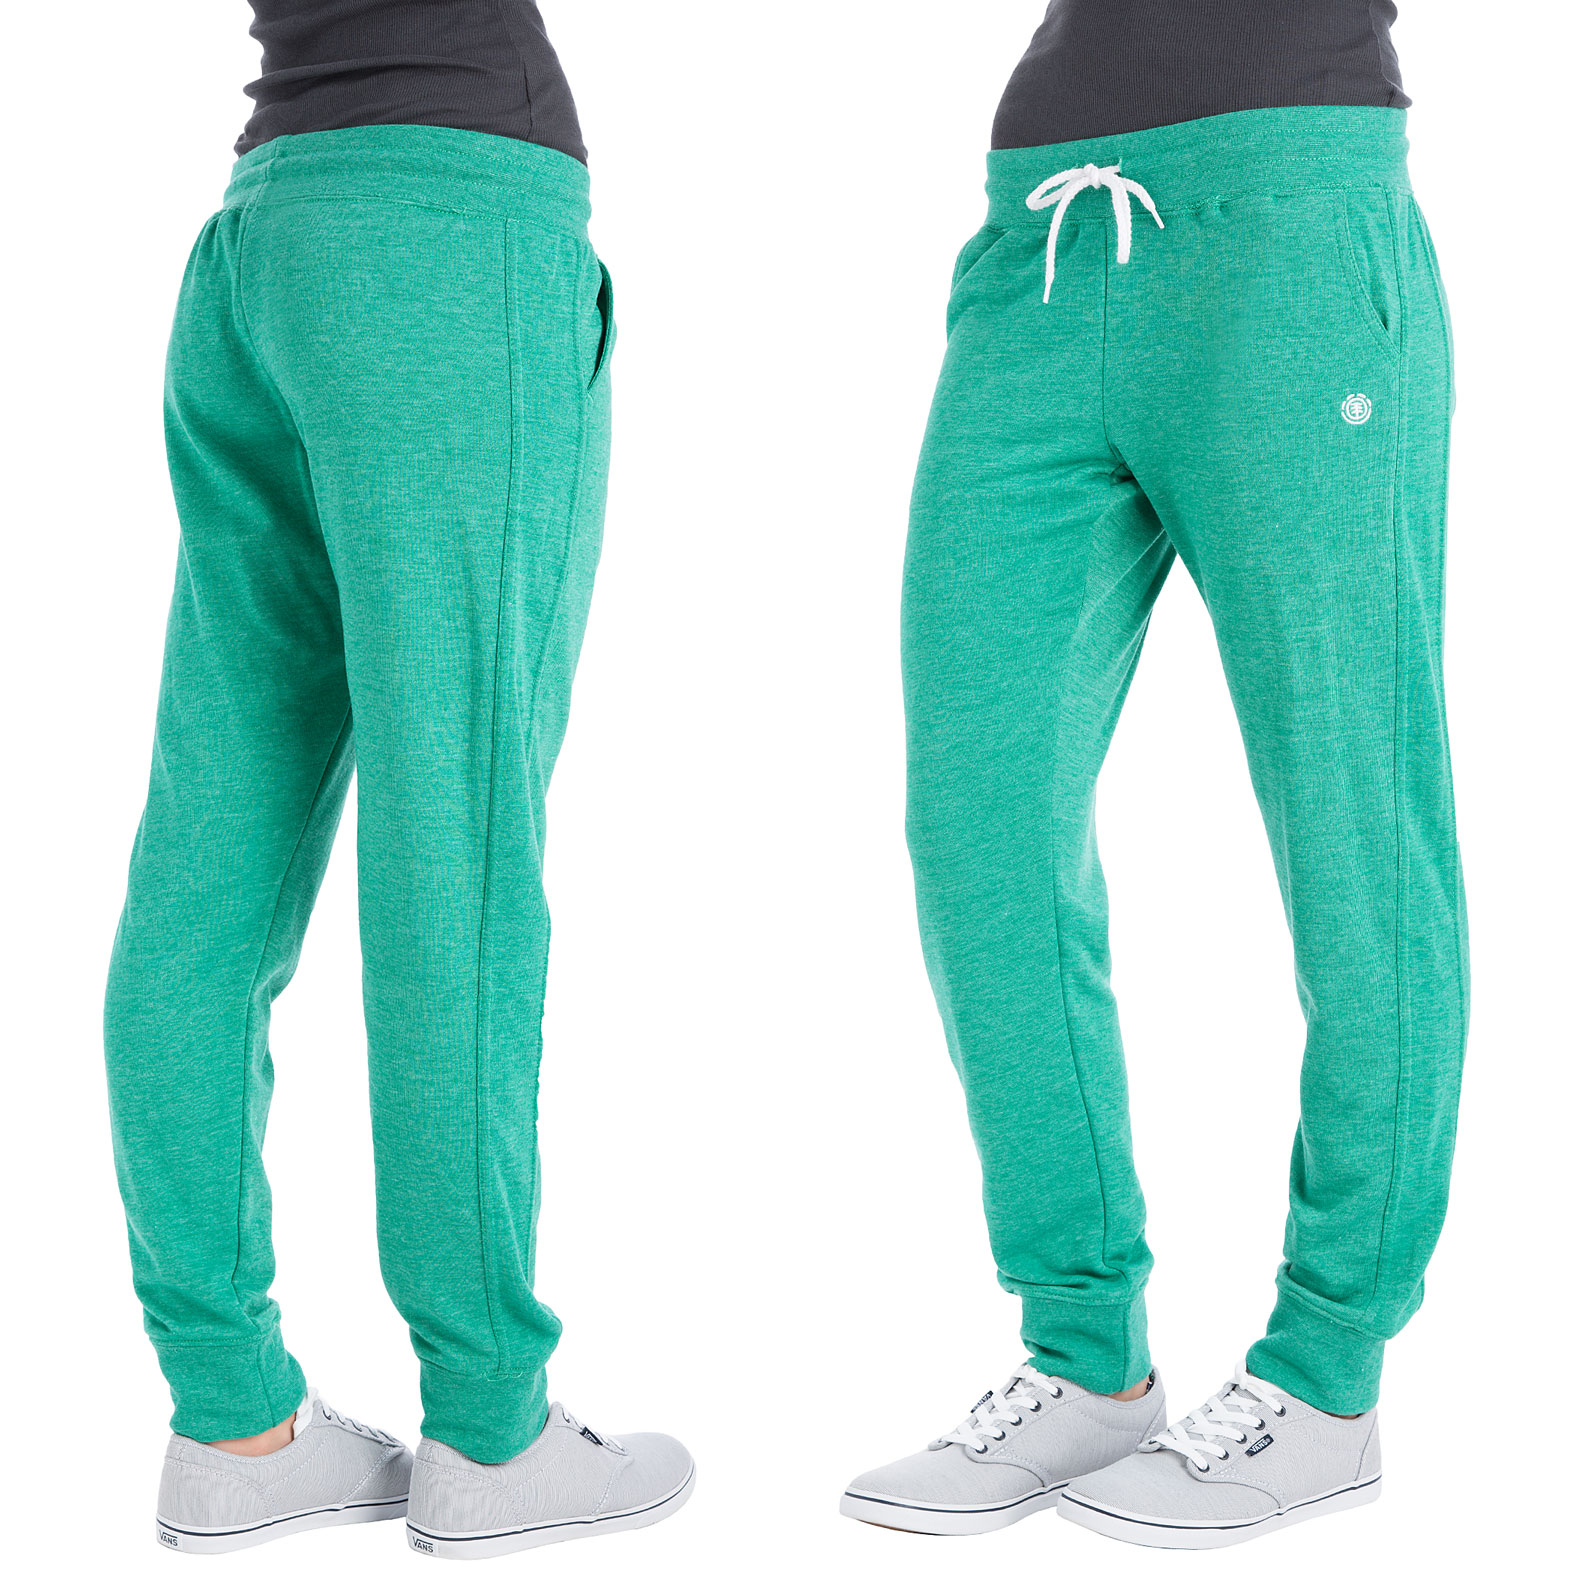 Simple Sweet Pants Green Slimfit Joggers In Green For Men  Lyst